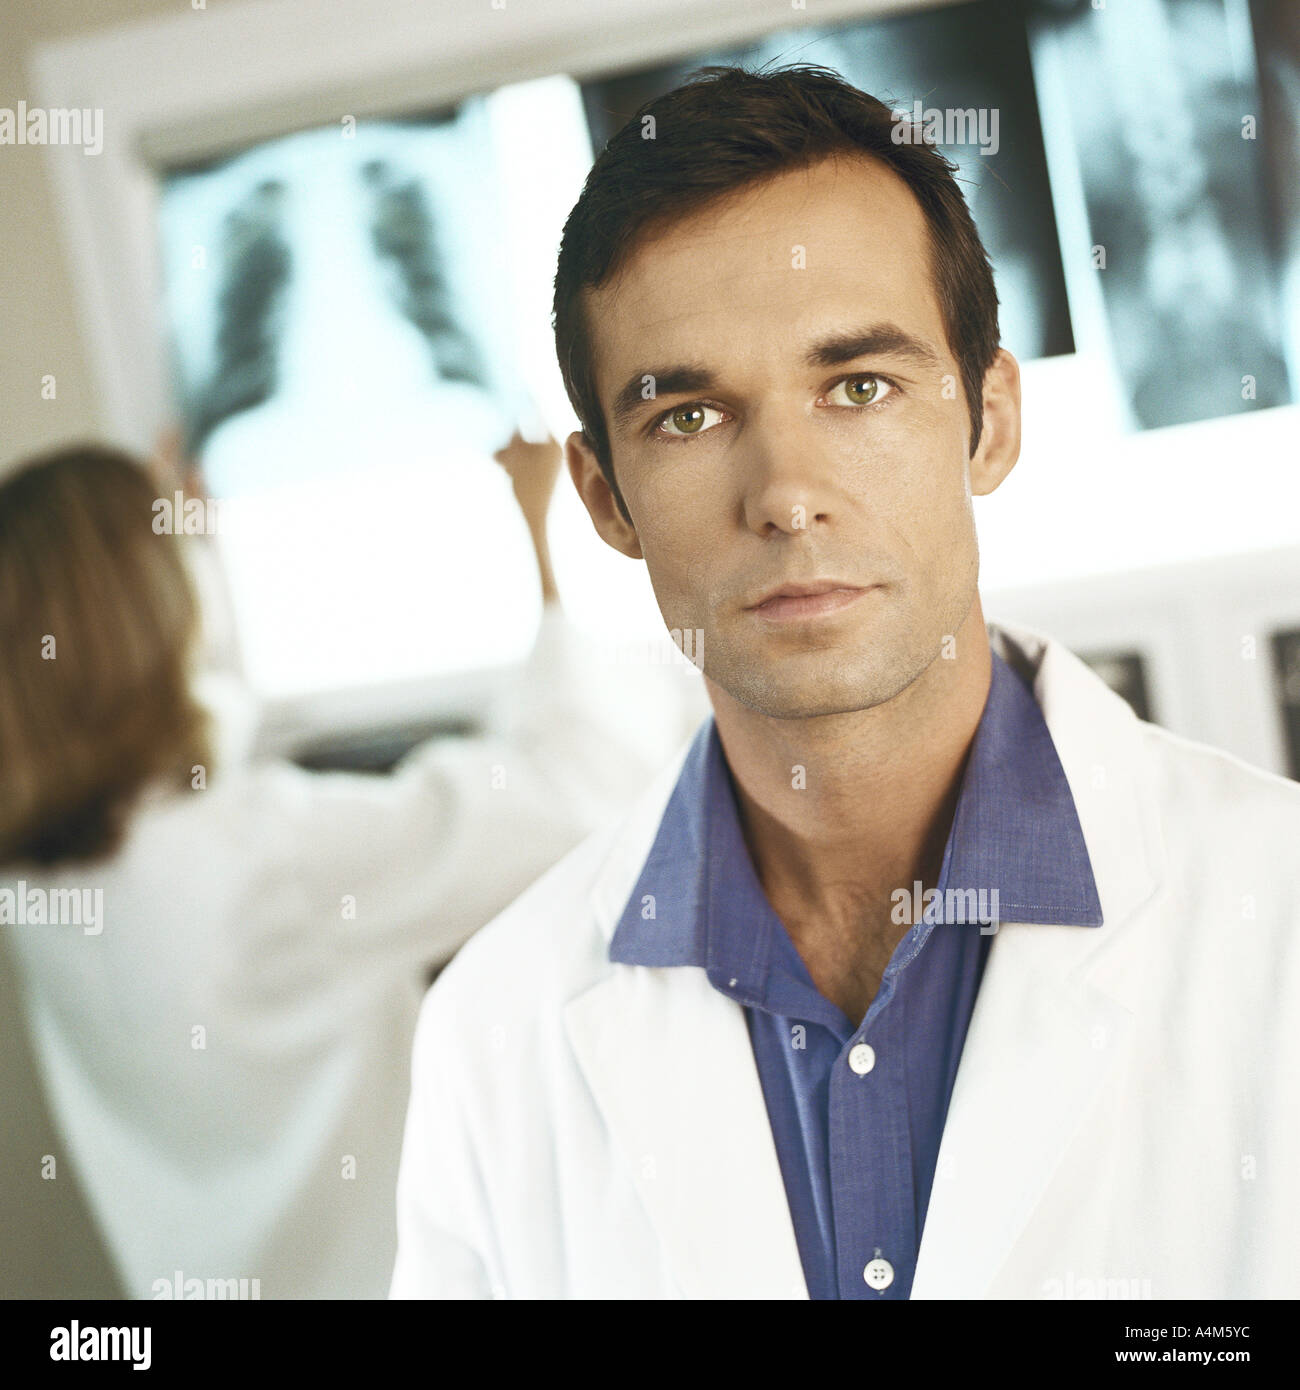 Doctors in x-ray lab - Stock Image